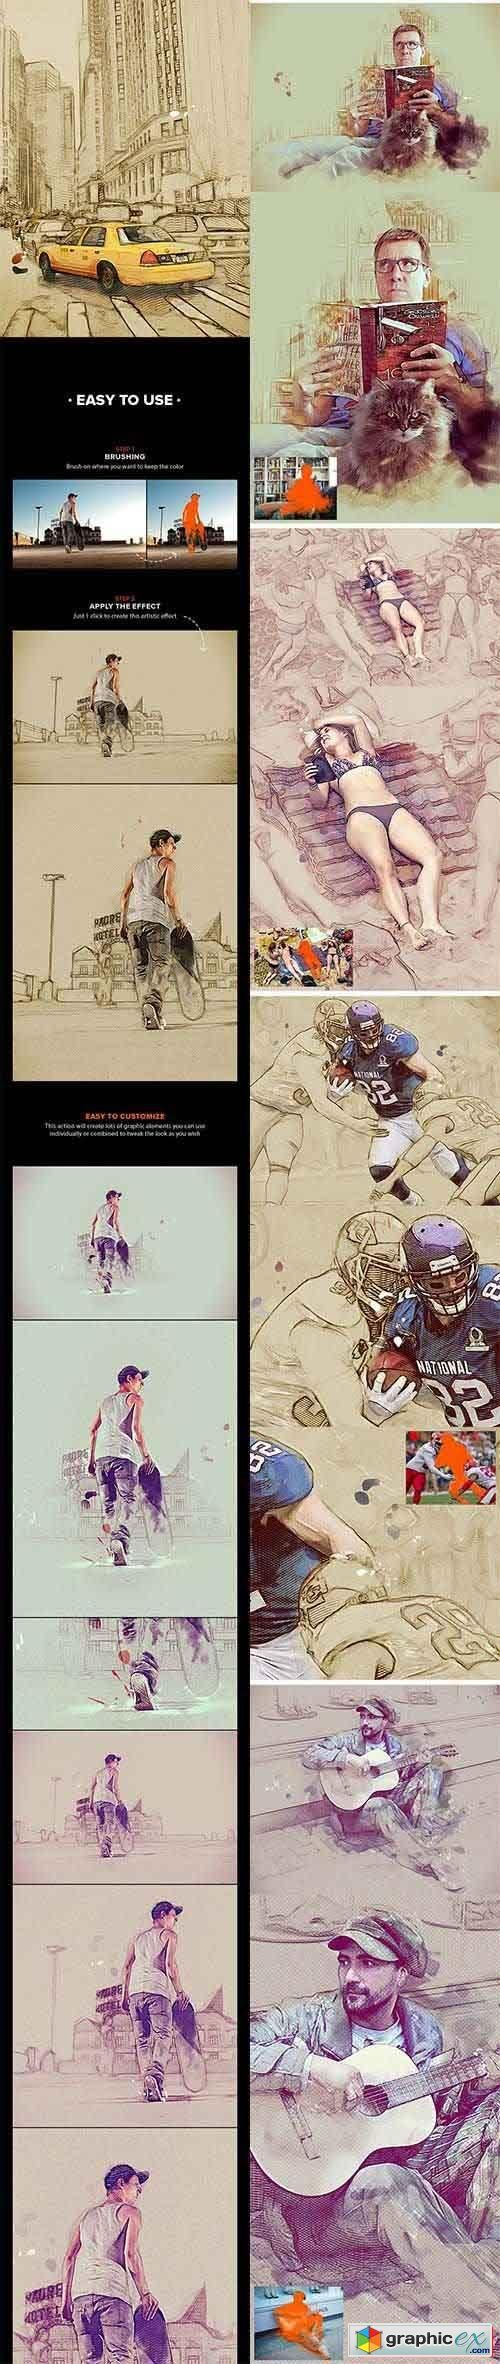 MixArt - Sketch Painting Photoshop Action